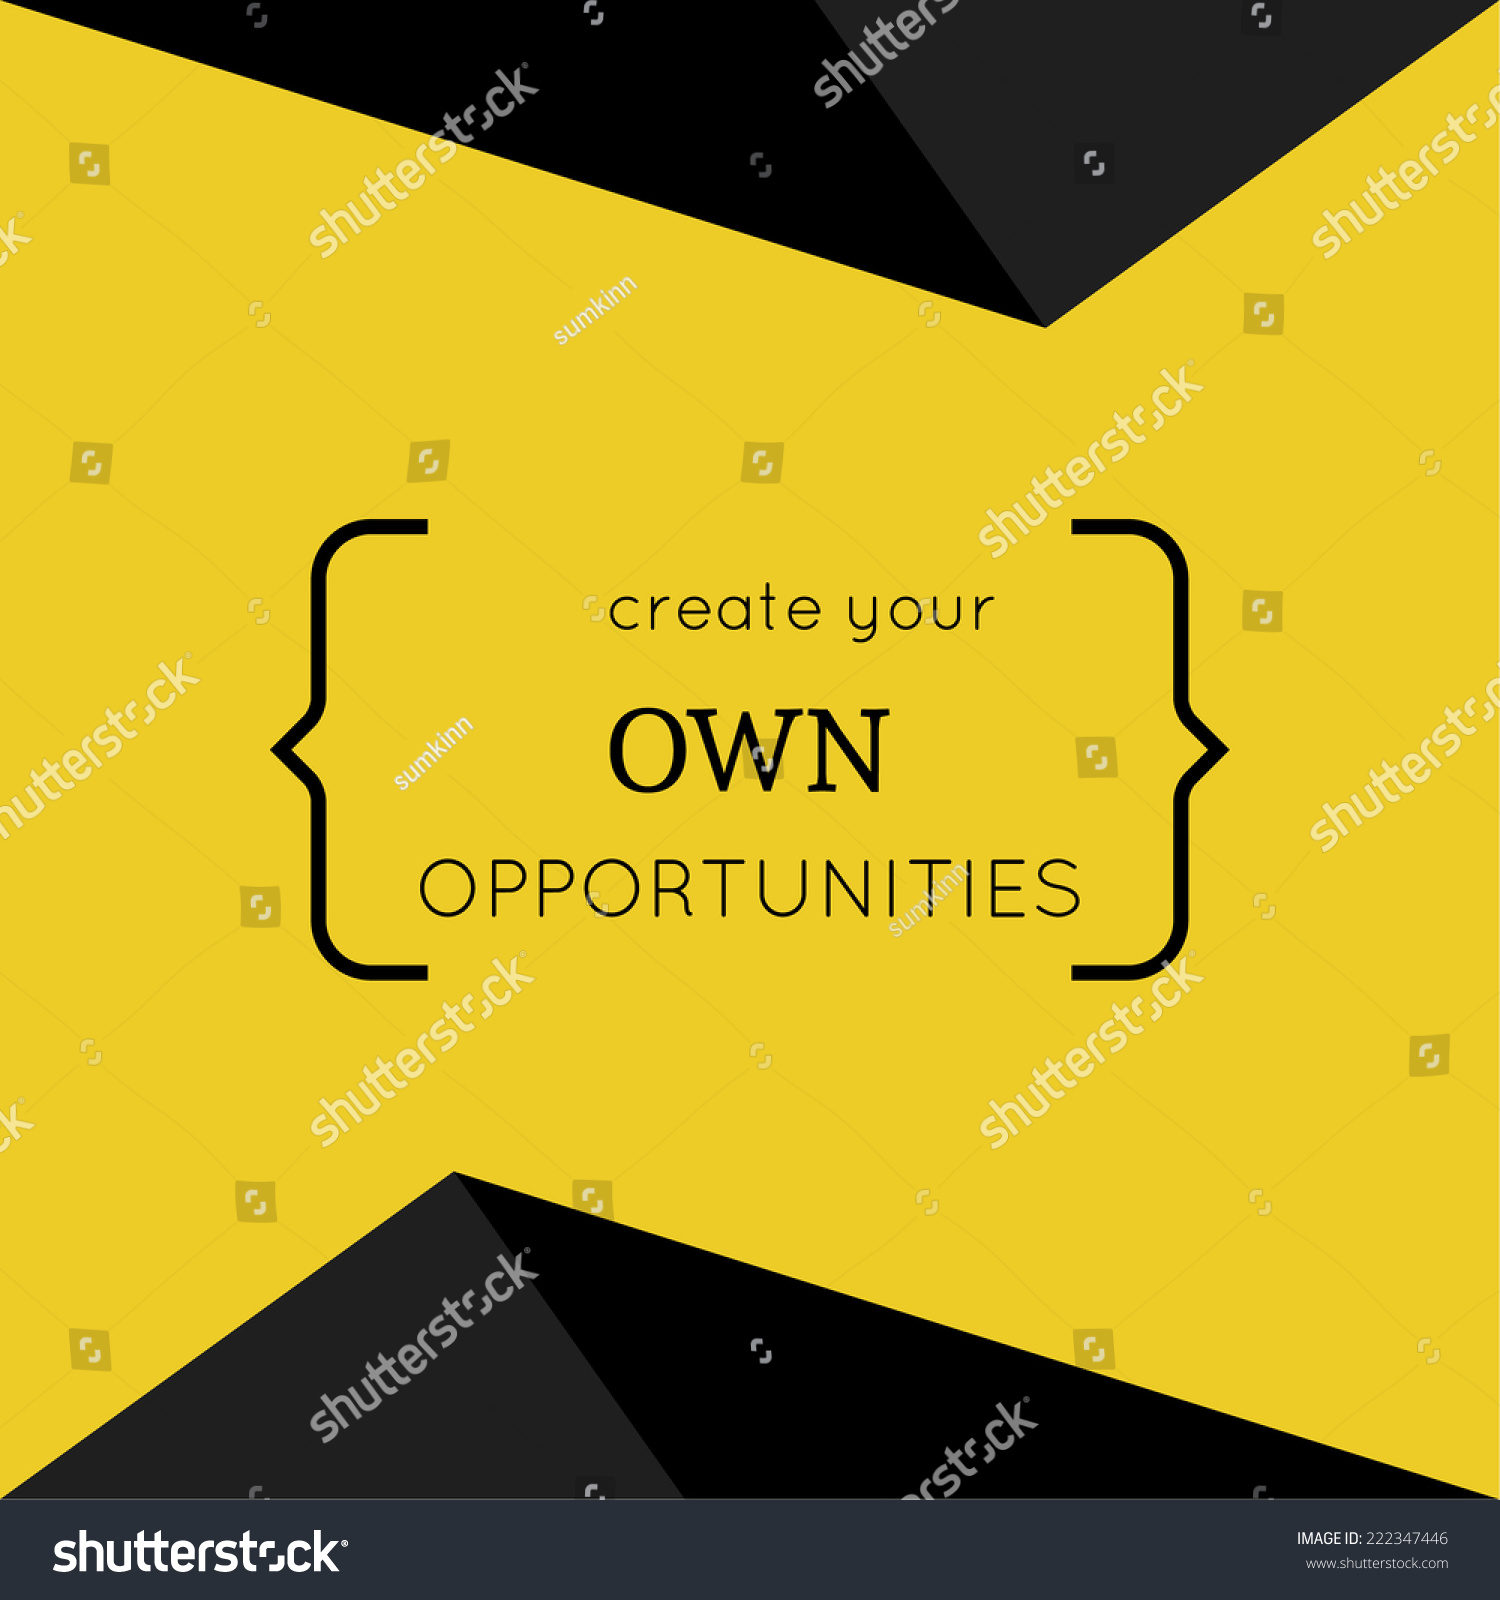 Inspirational Quotes Motivation: Inspirational Quote Create Your Own Opportunities Stock